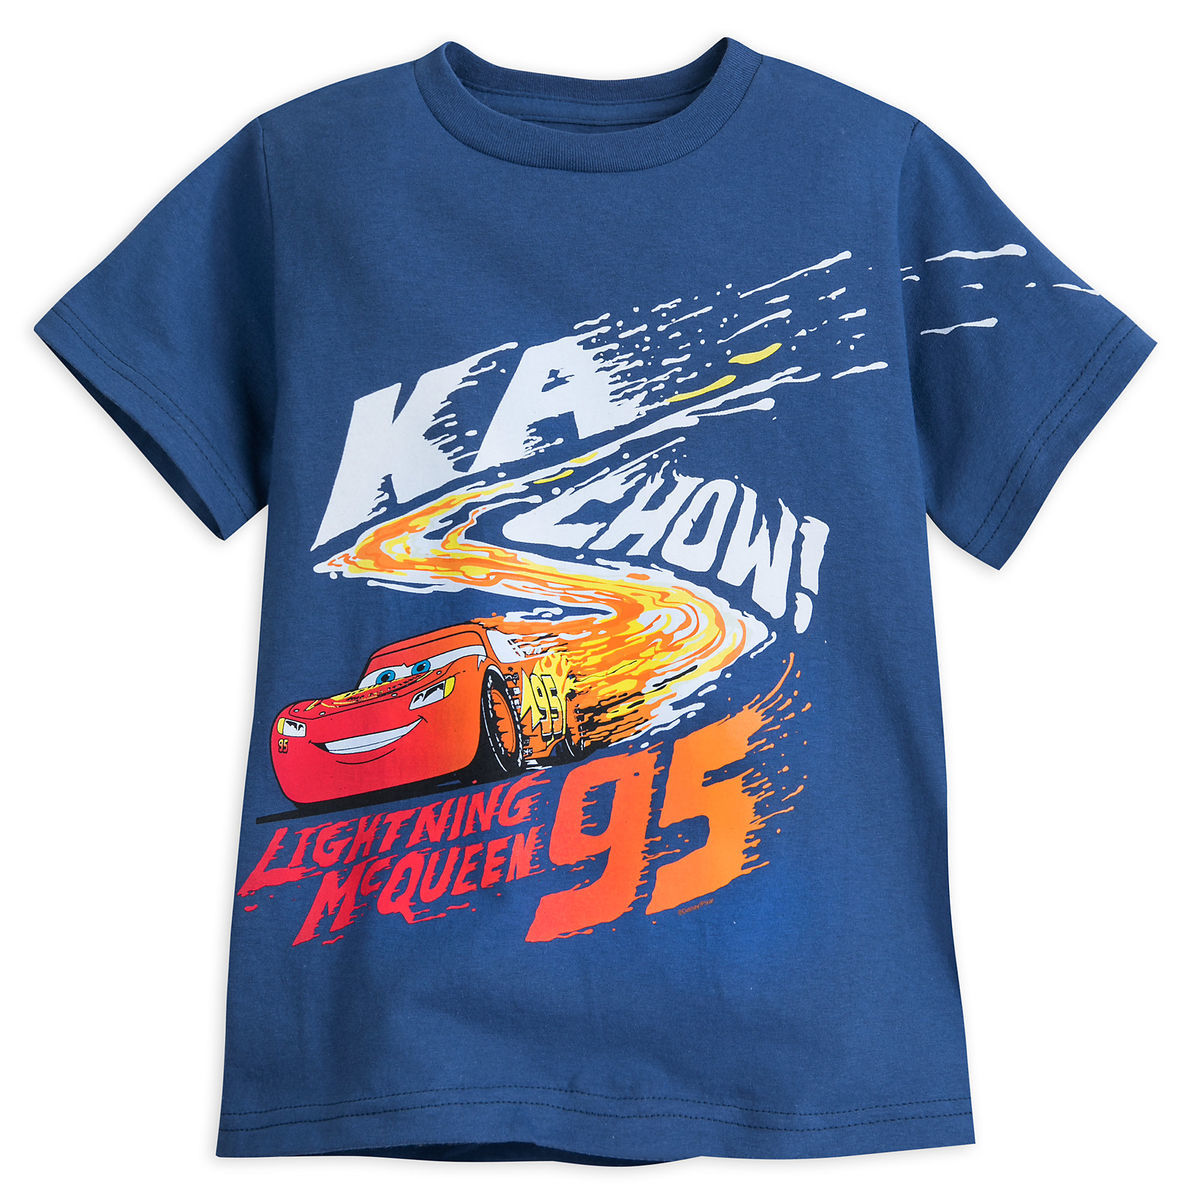 Product Image Of Lightning McQueen T Shirt For Boys